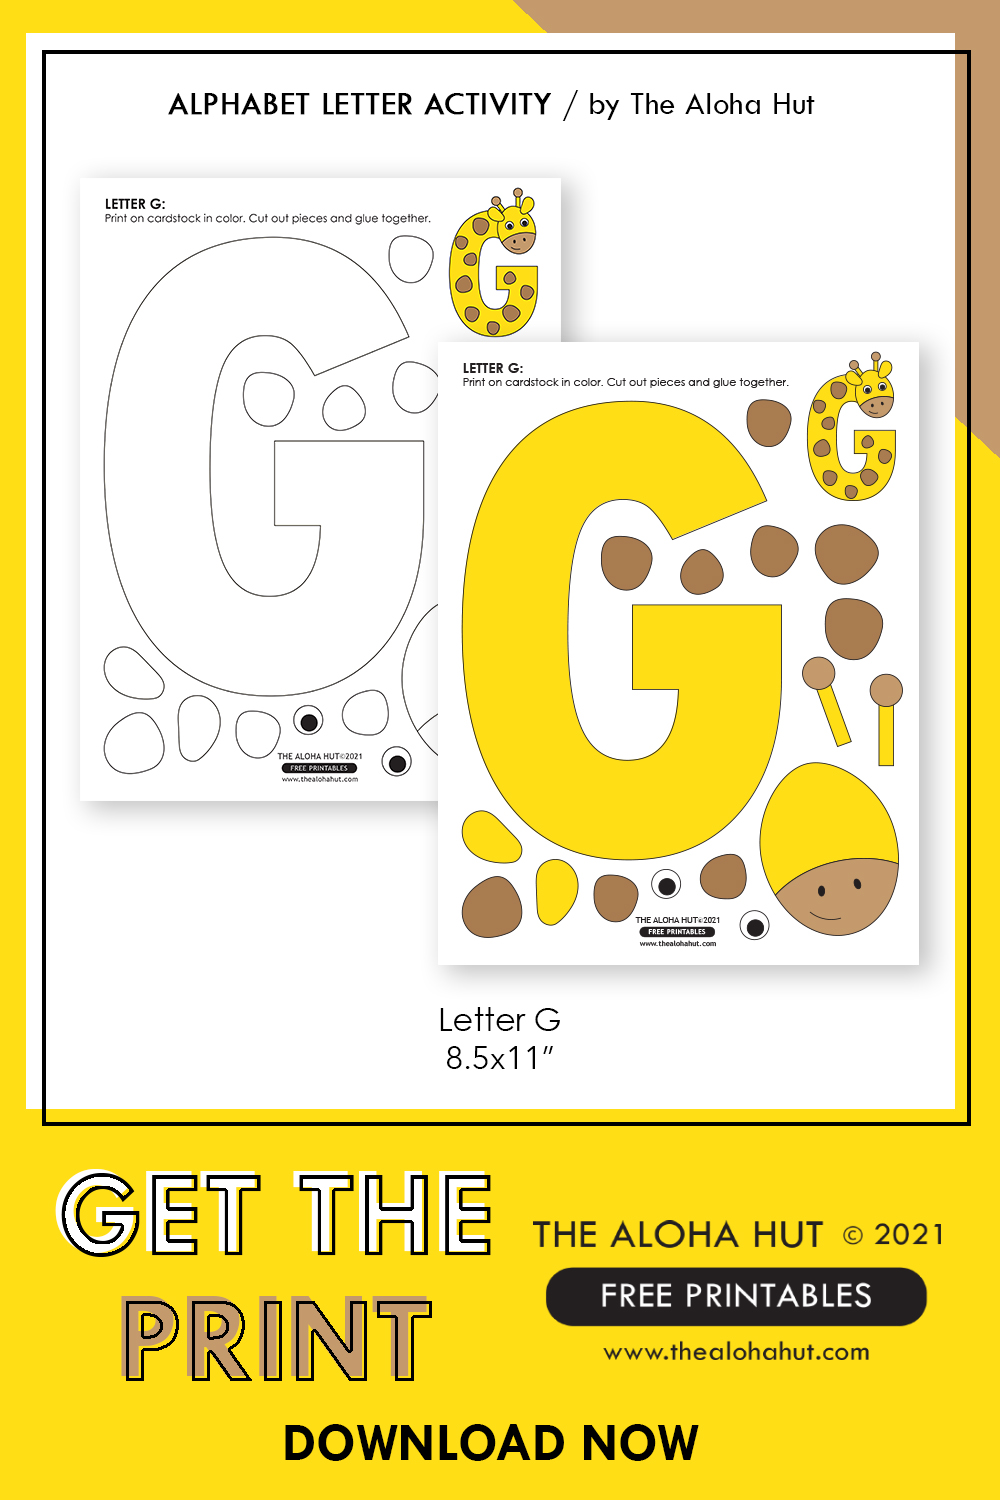 Alphabet Letter Crafts - Letter G - free printable 5 by the Aloha Hut